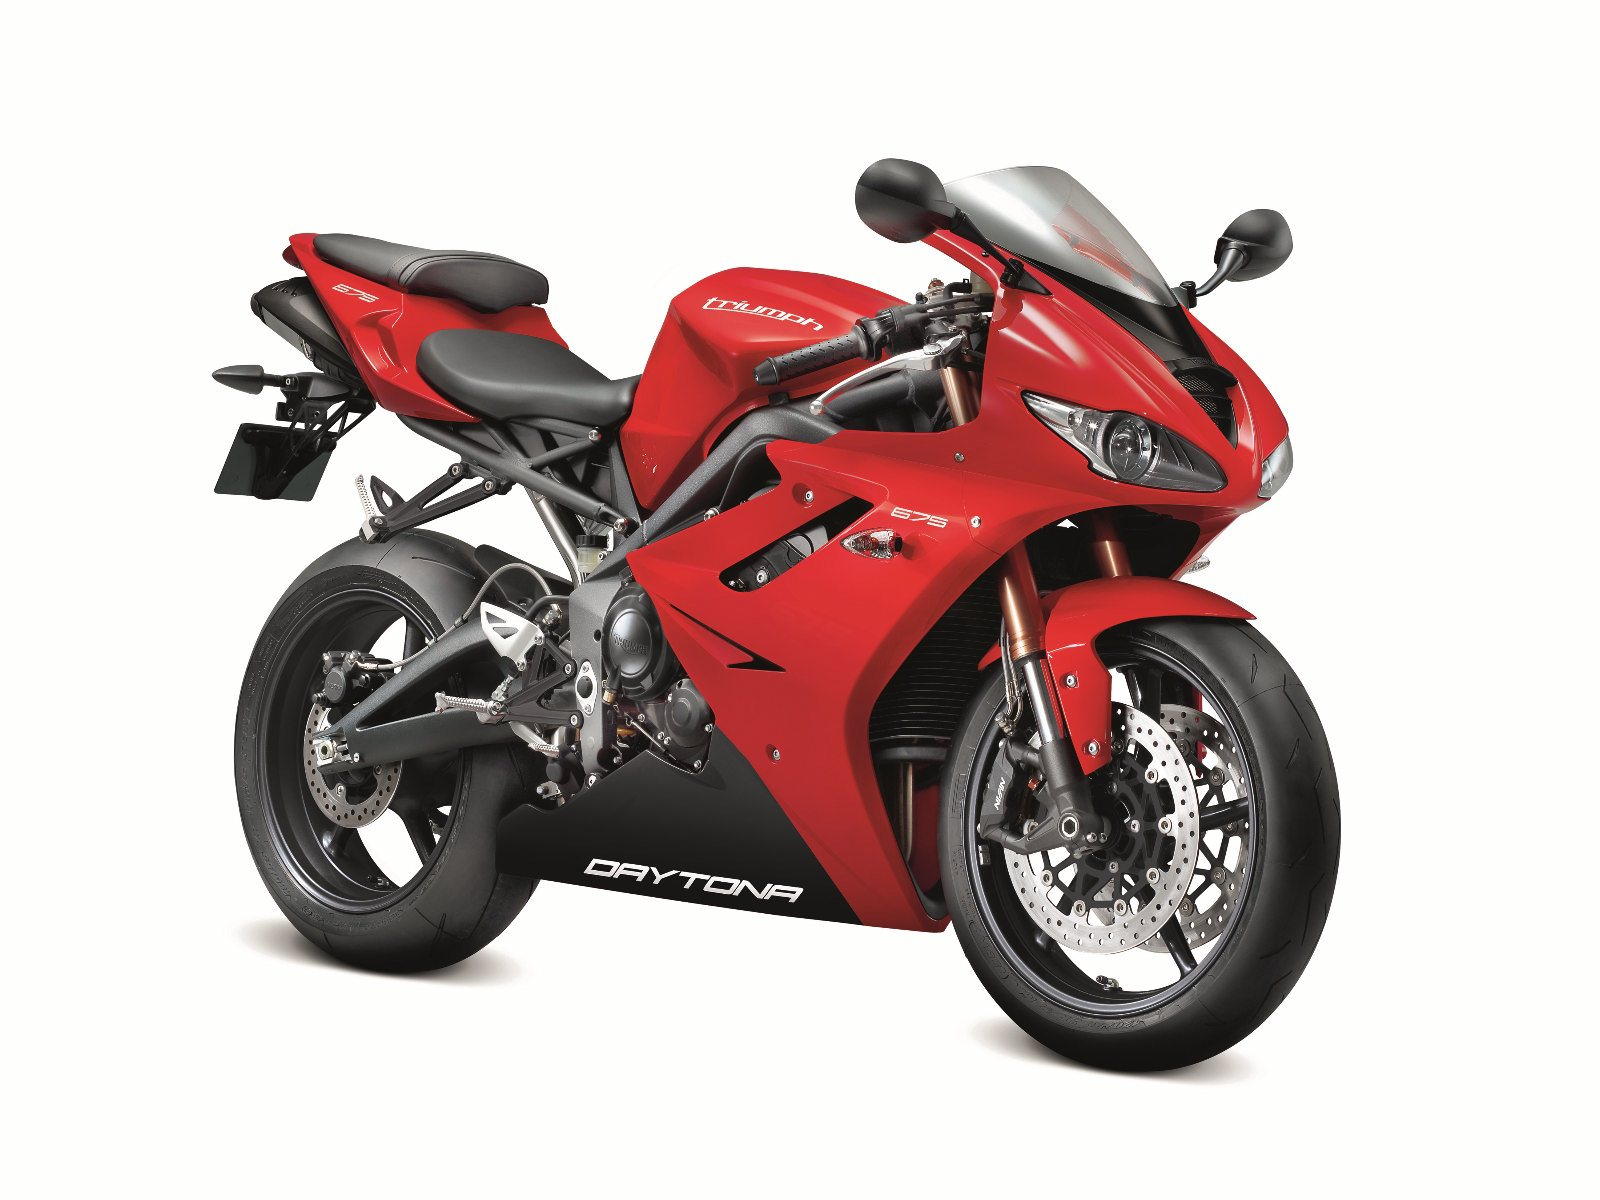 2012 triumph daytona 675 review top speed. Black Bedroom Furniture Sets. Home Design Ideas